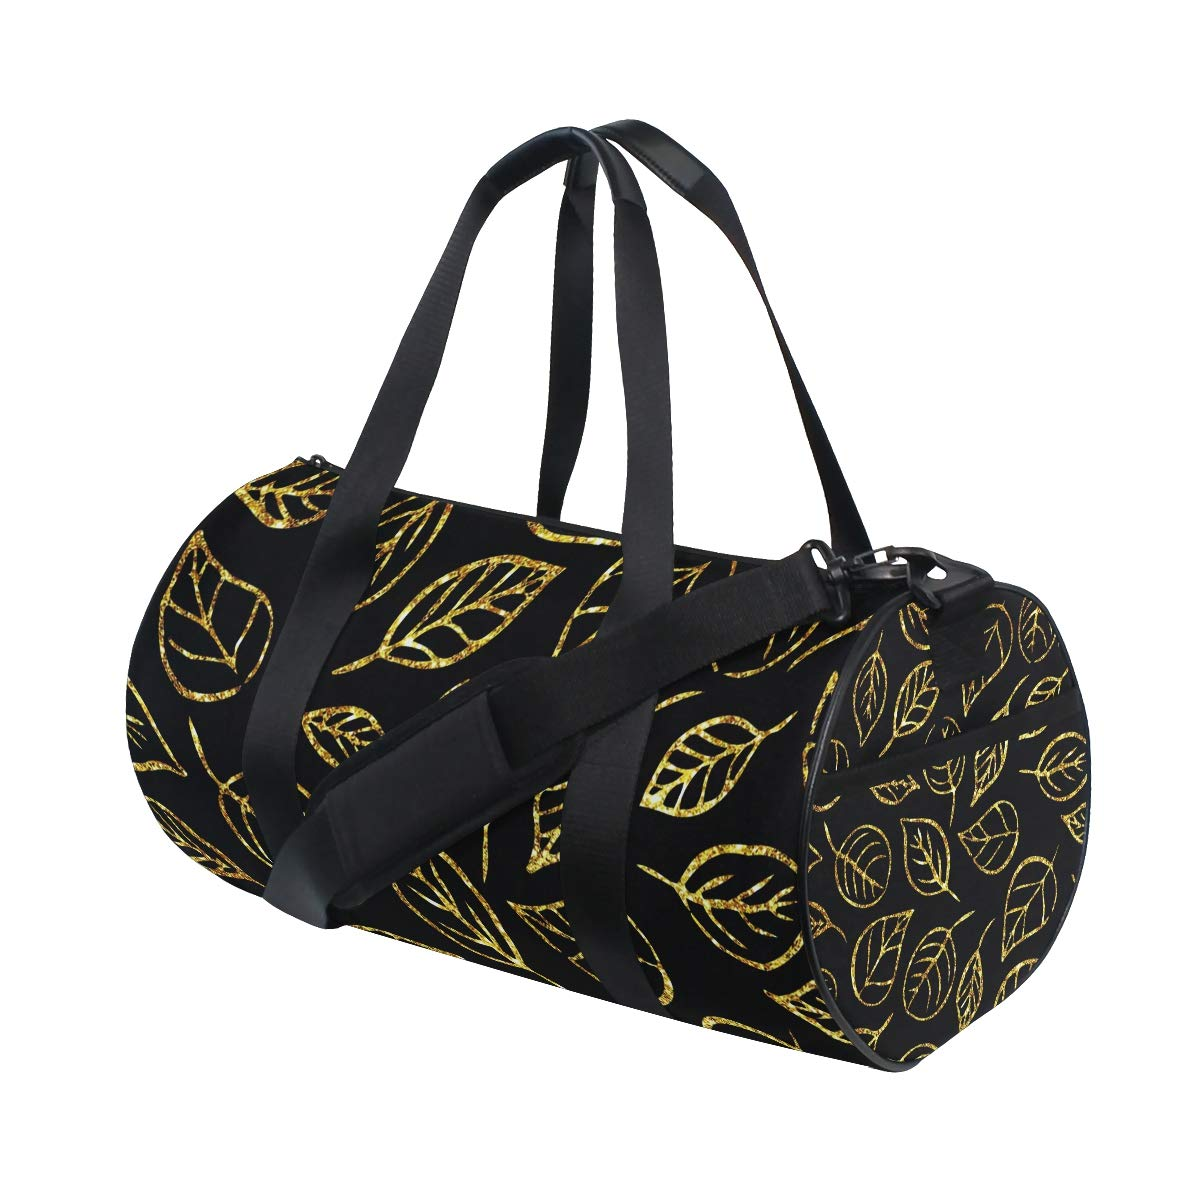 Sports Gym Duffel Barrel Bag Golden Leaves Pattern Travel Luggage Handbag for Men Women